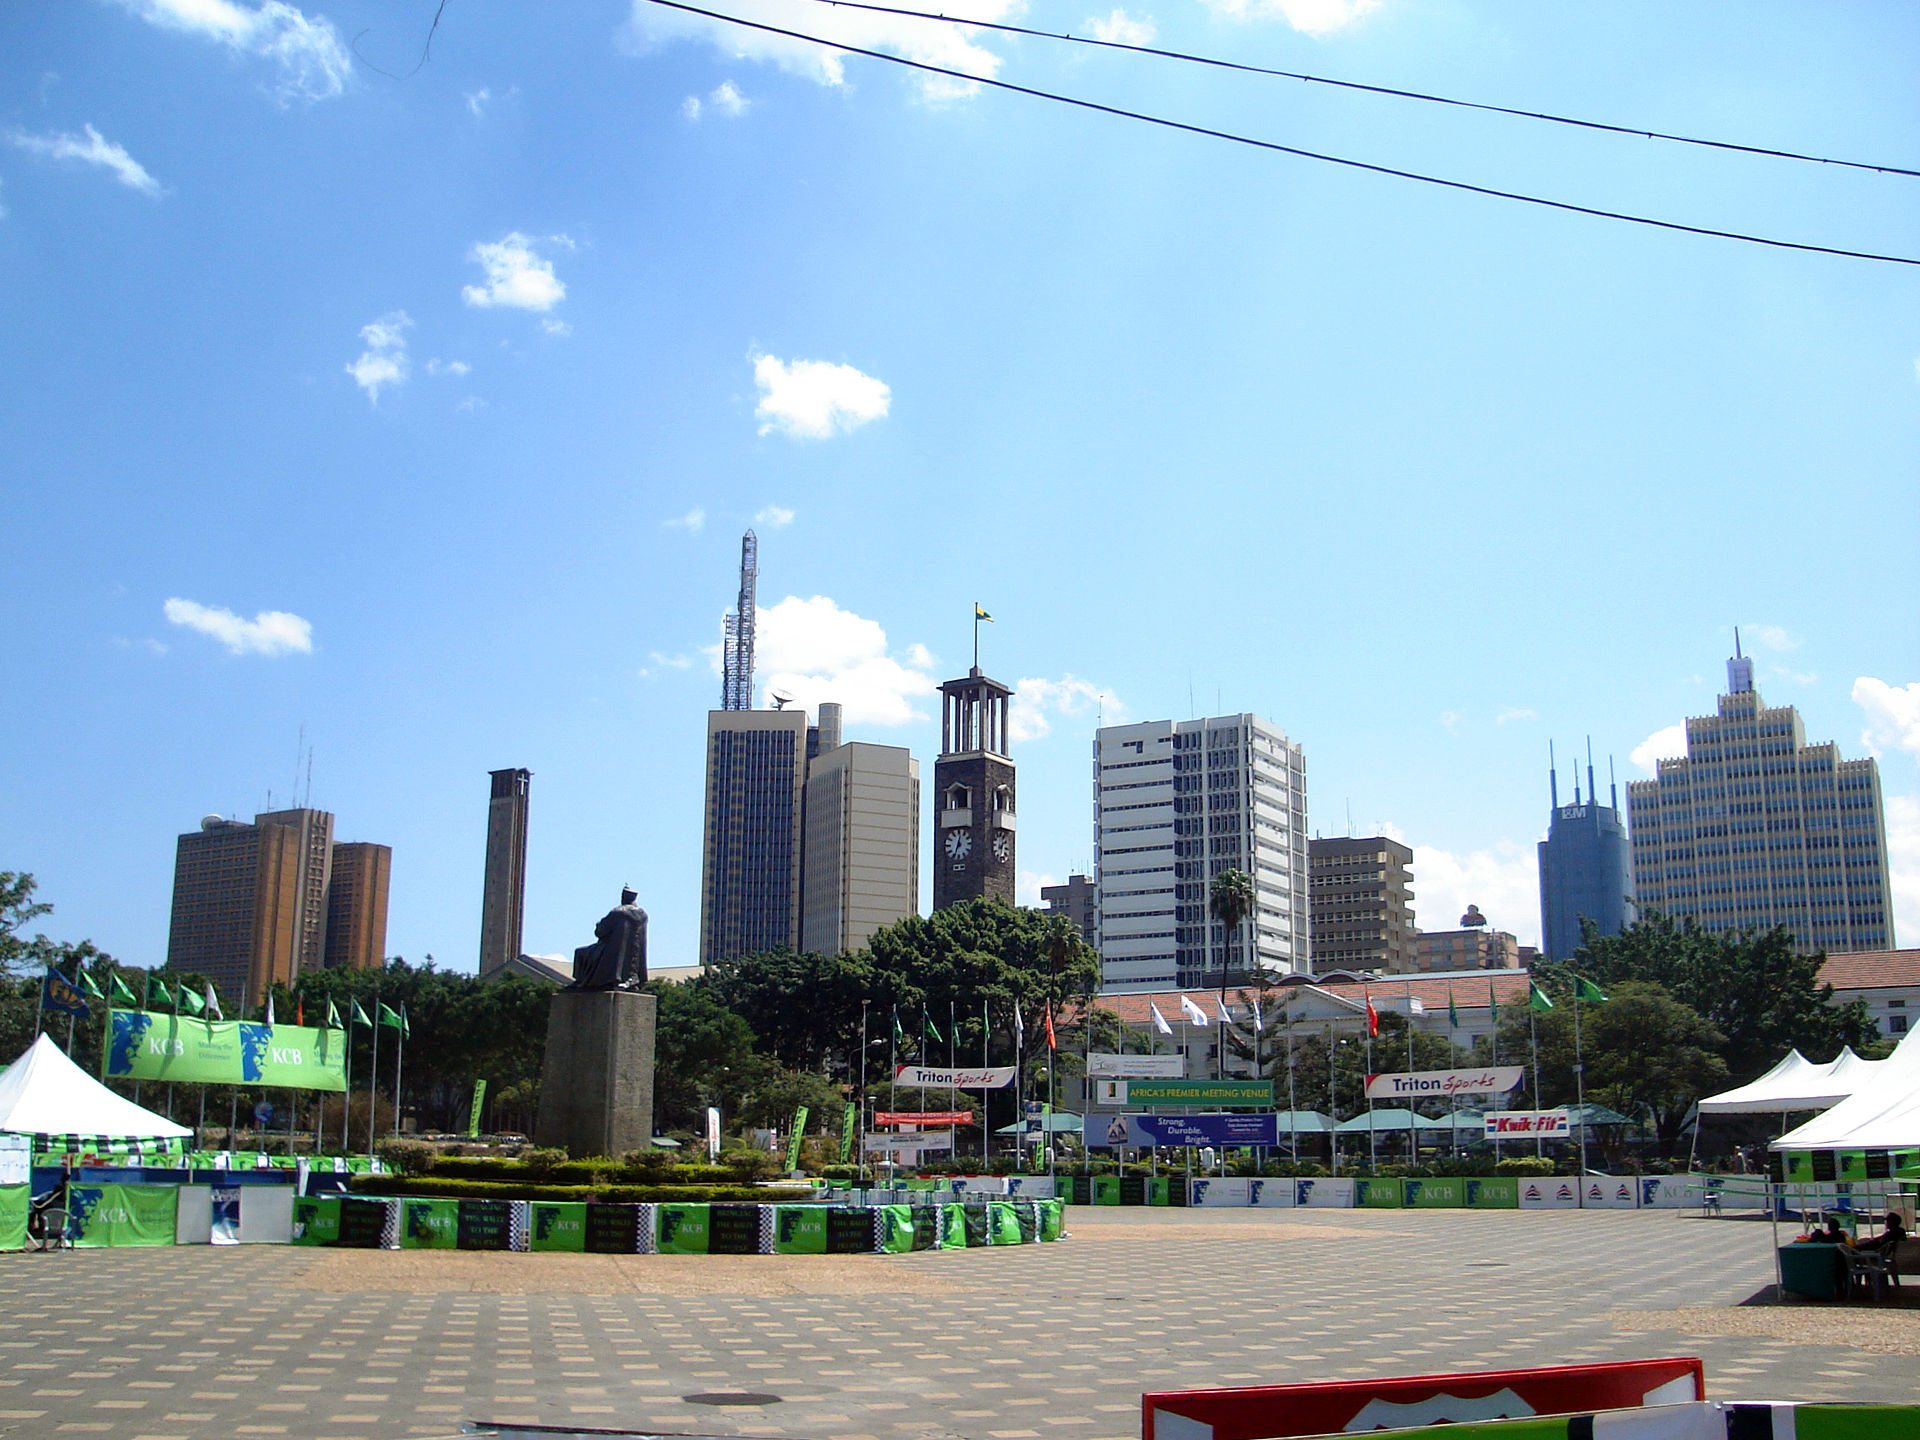 A_view_of_Nairobi_from_the_Kenyatta_International_Conference_Centre